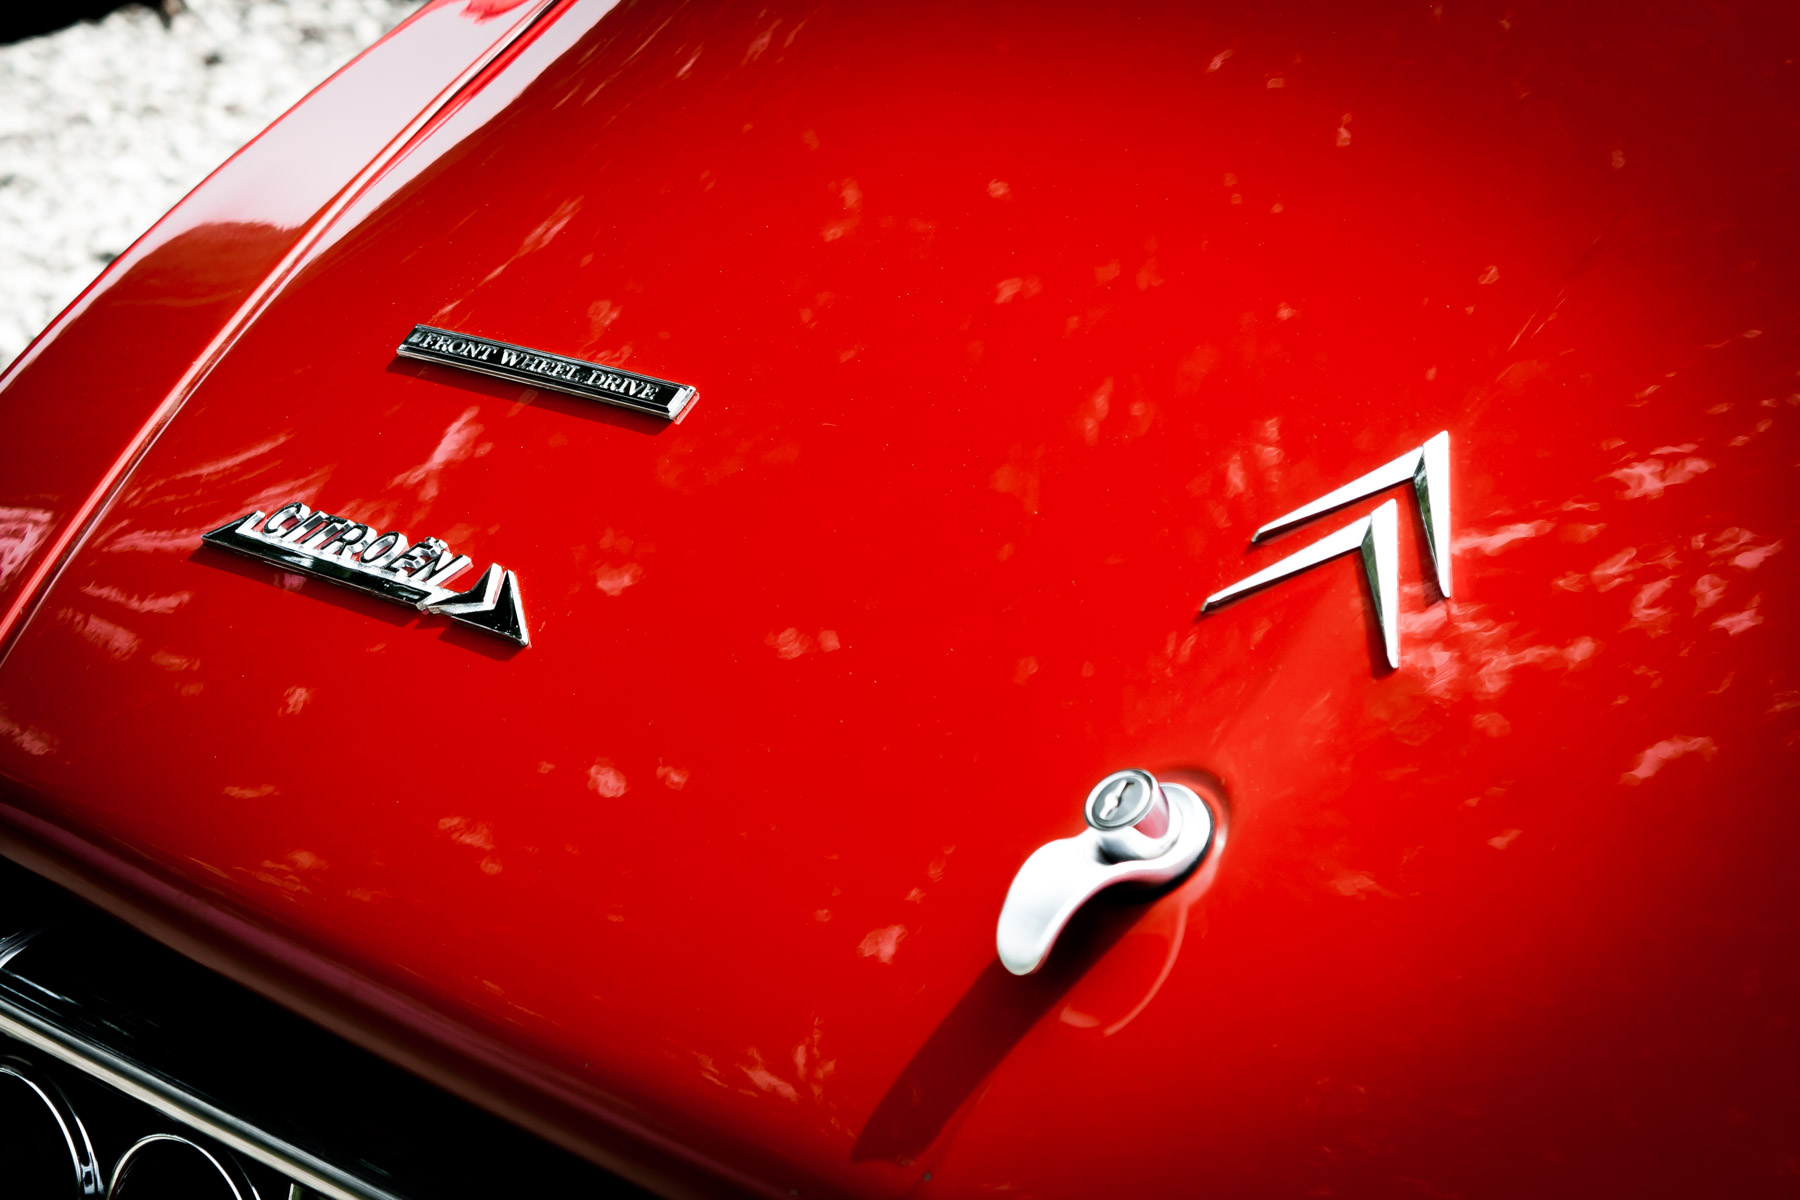 Detail of a classic Citroën spotted at All British and European Car Day, White Rock Lake, Dallas, Texas.